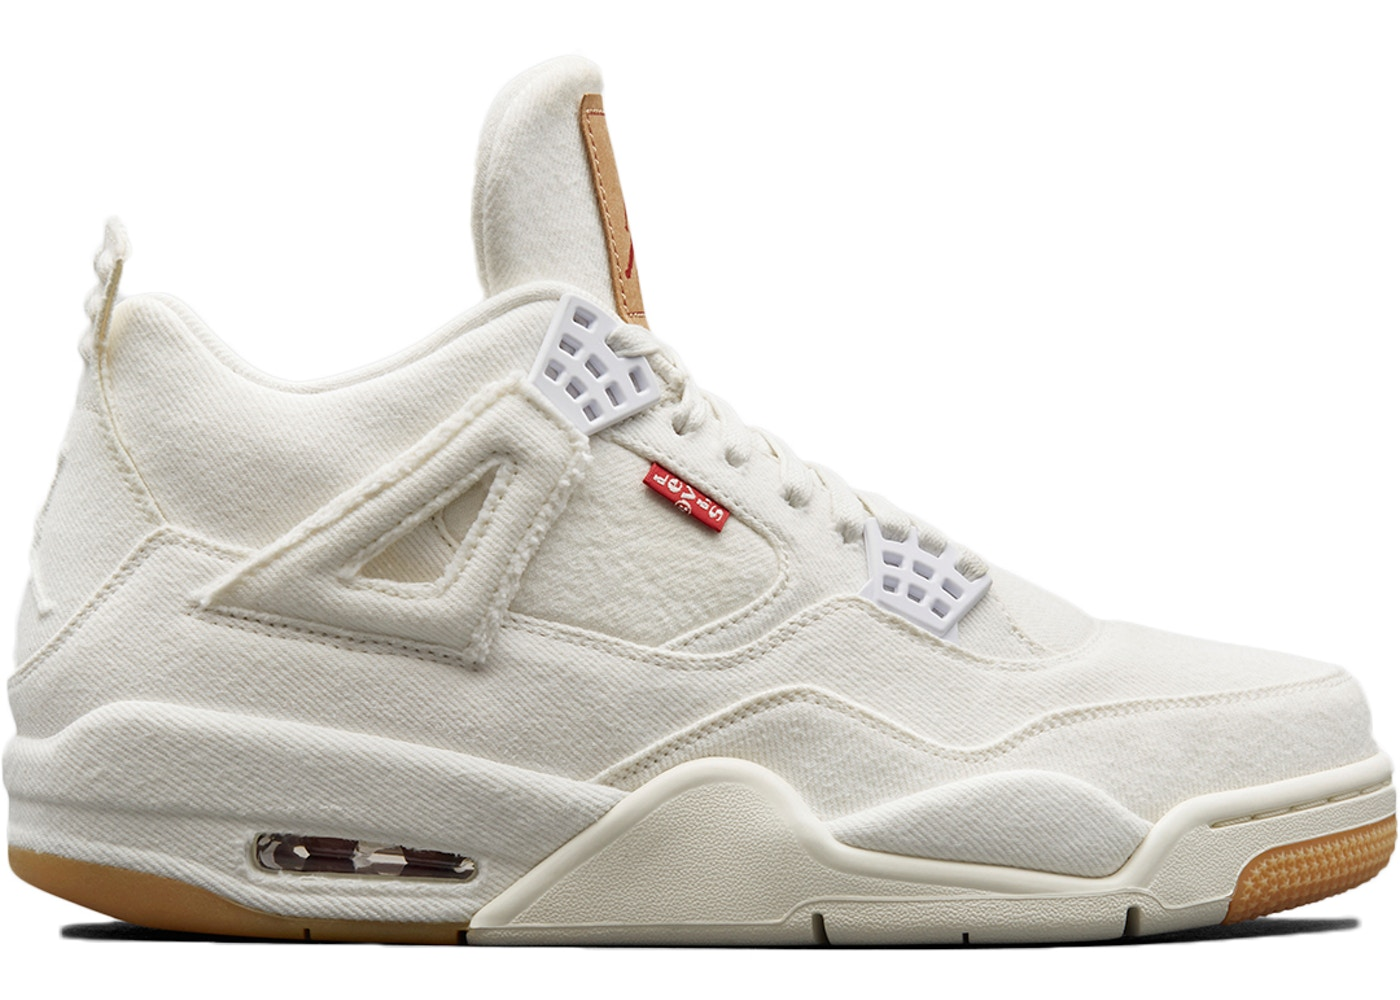 check out f9171 ef59c Jordan 4 Retro Levi's White (Levi's Tag)